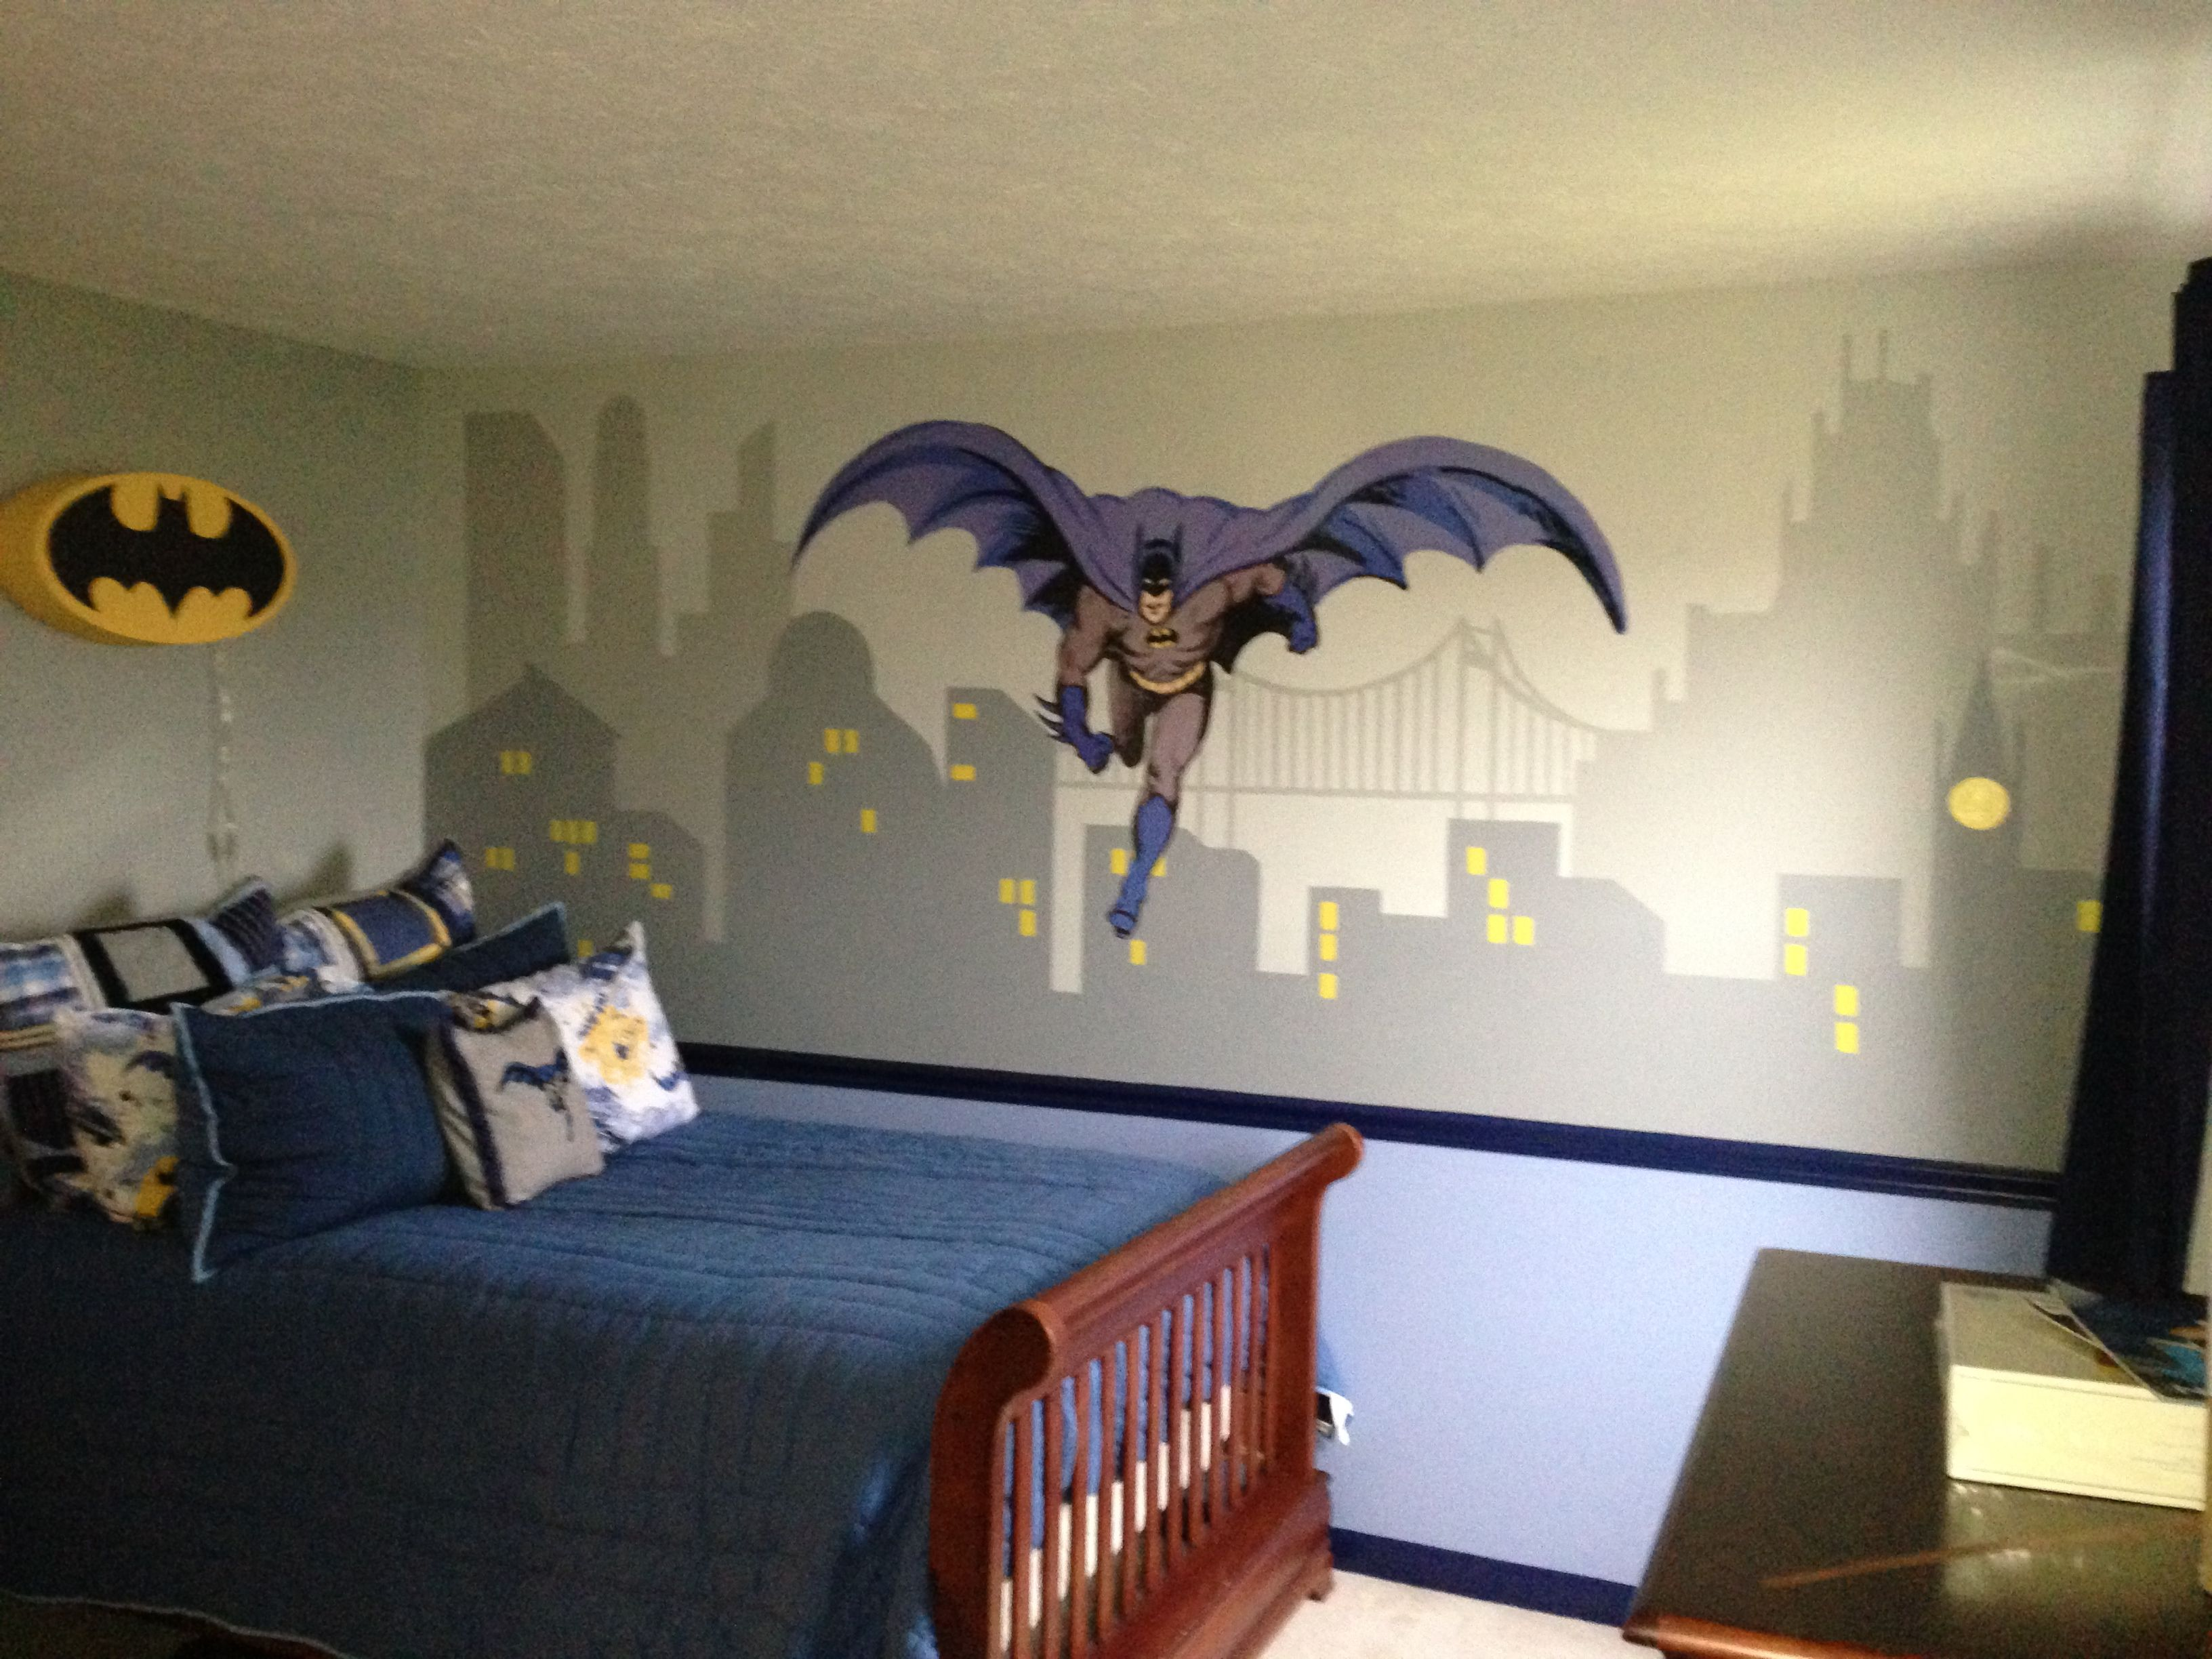 Pottery Barn Kids Batman Theme Bedroom Nursery Decor